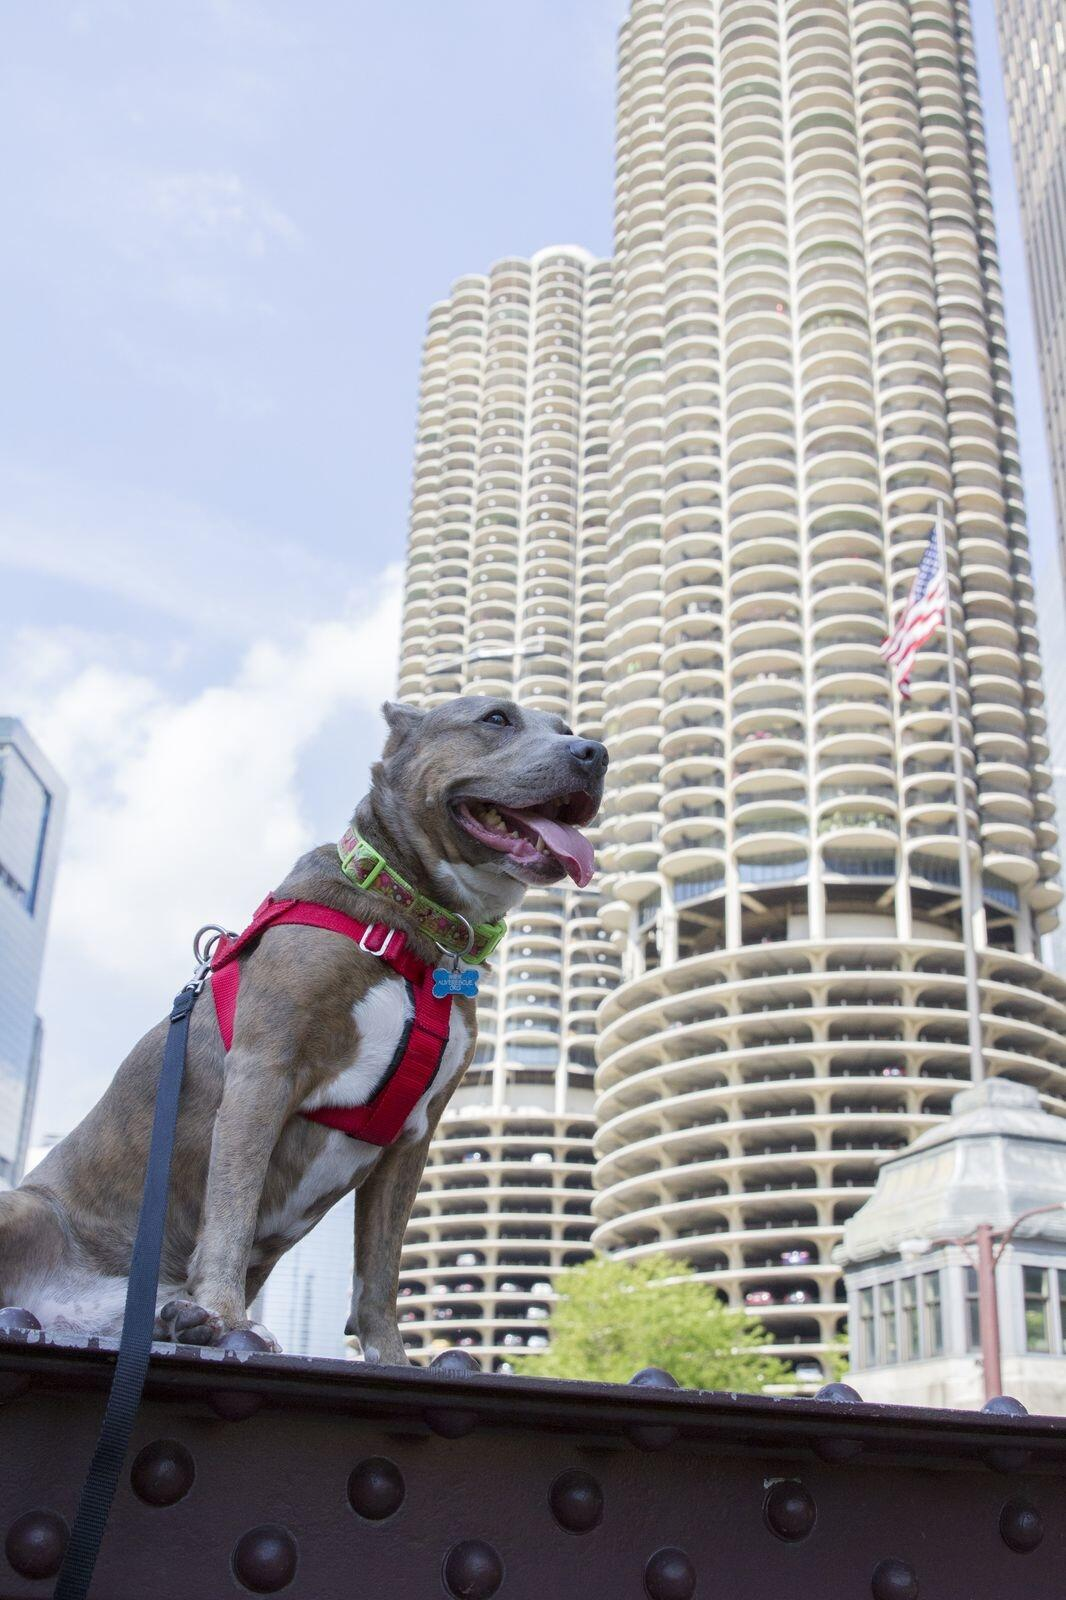 Dog Outdoors in Downtown Chicago